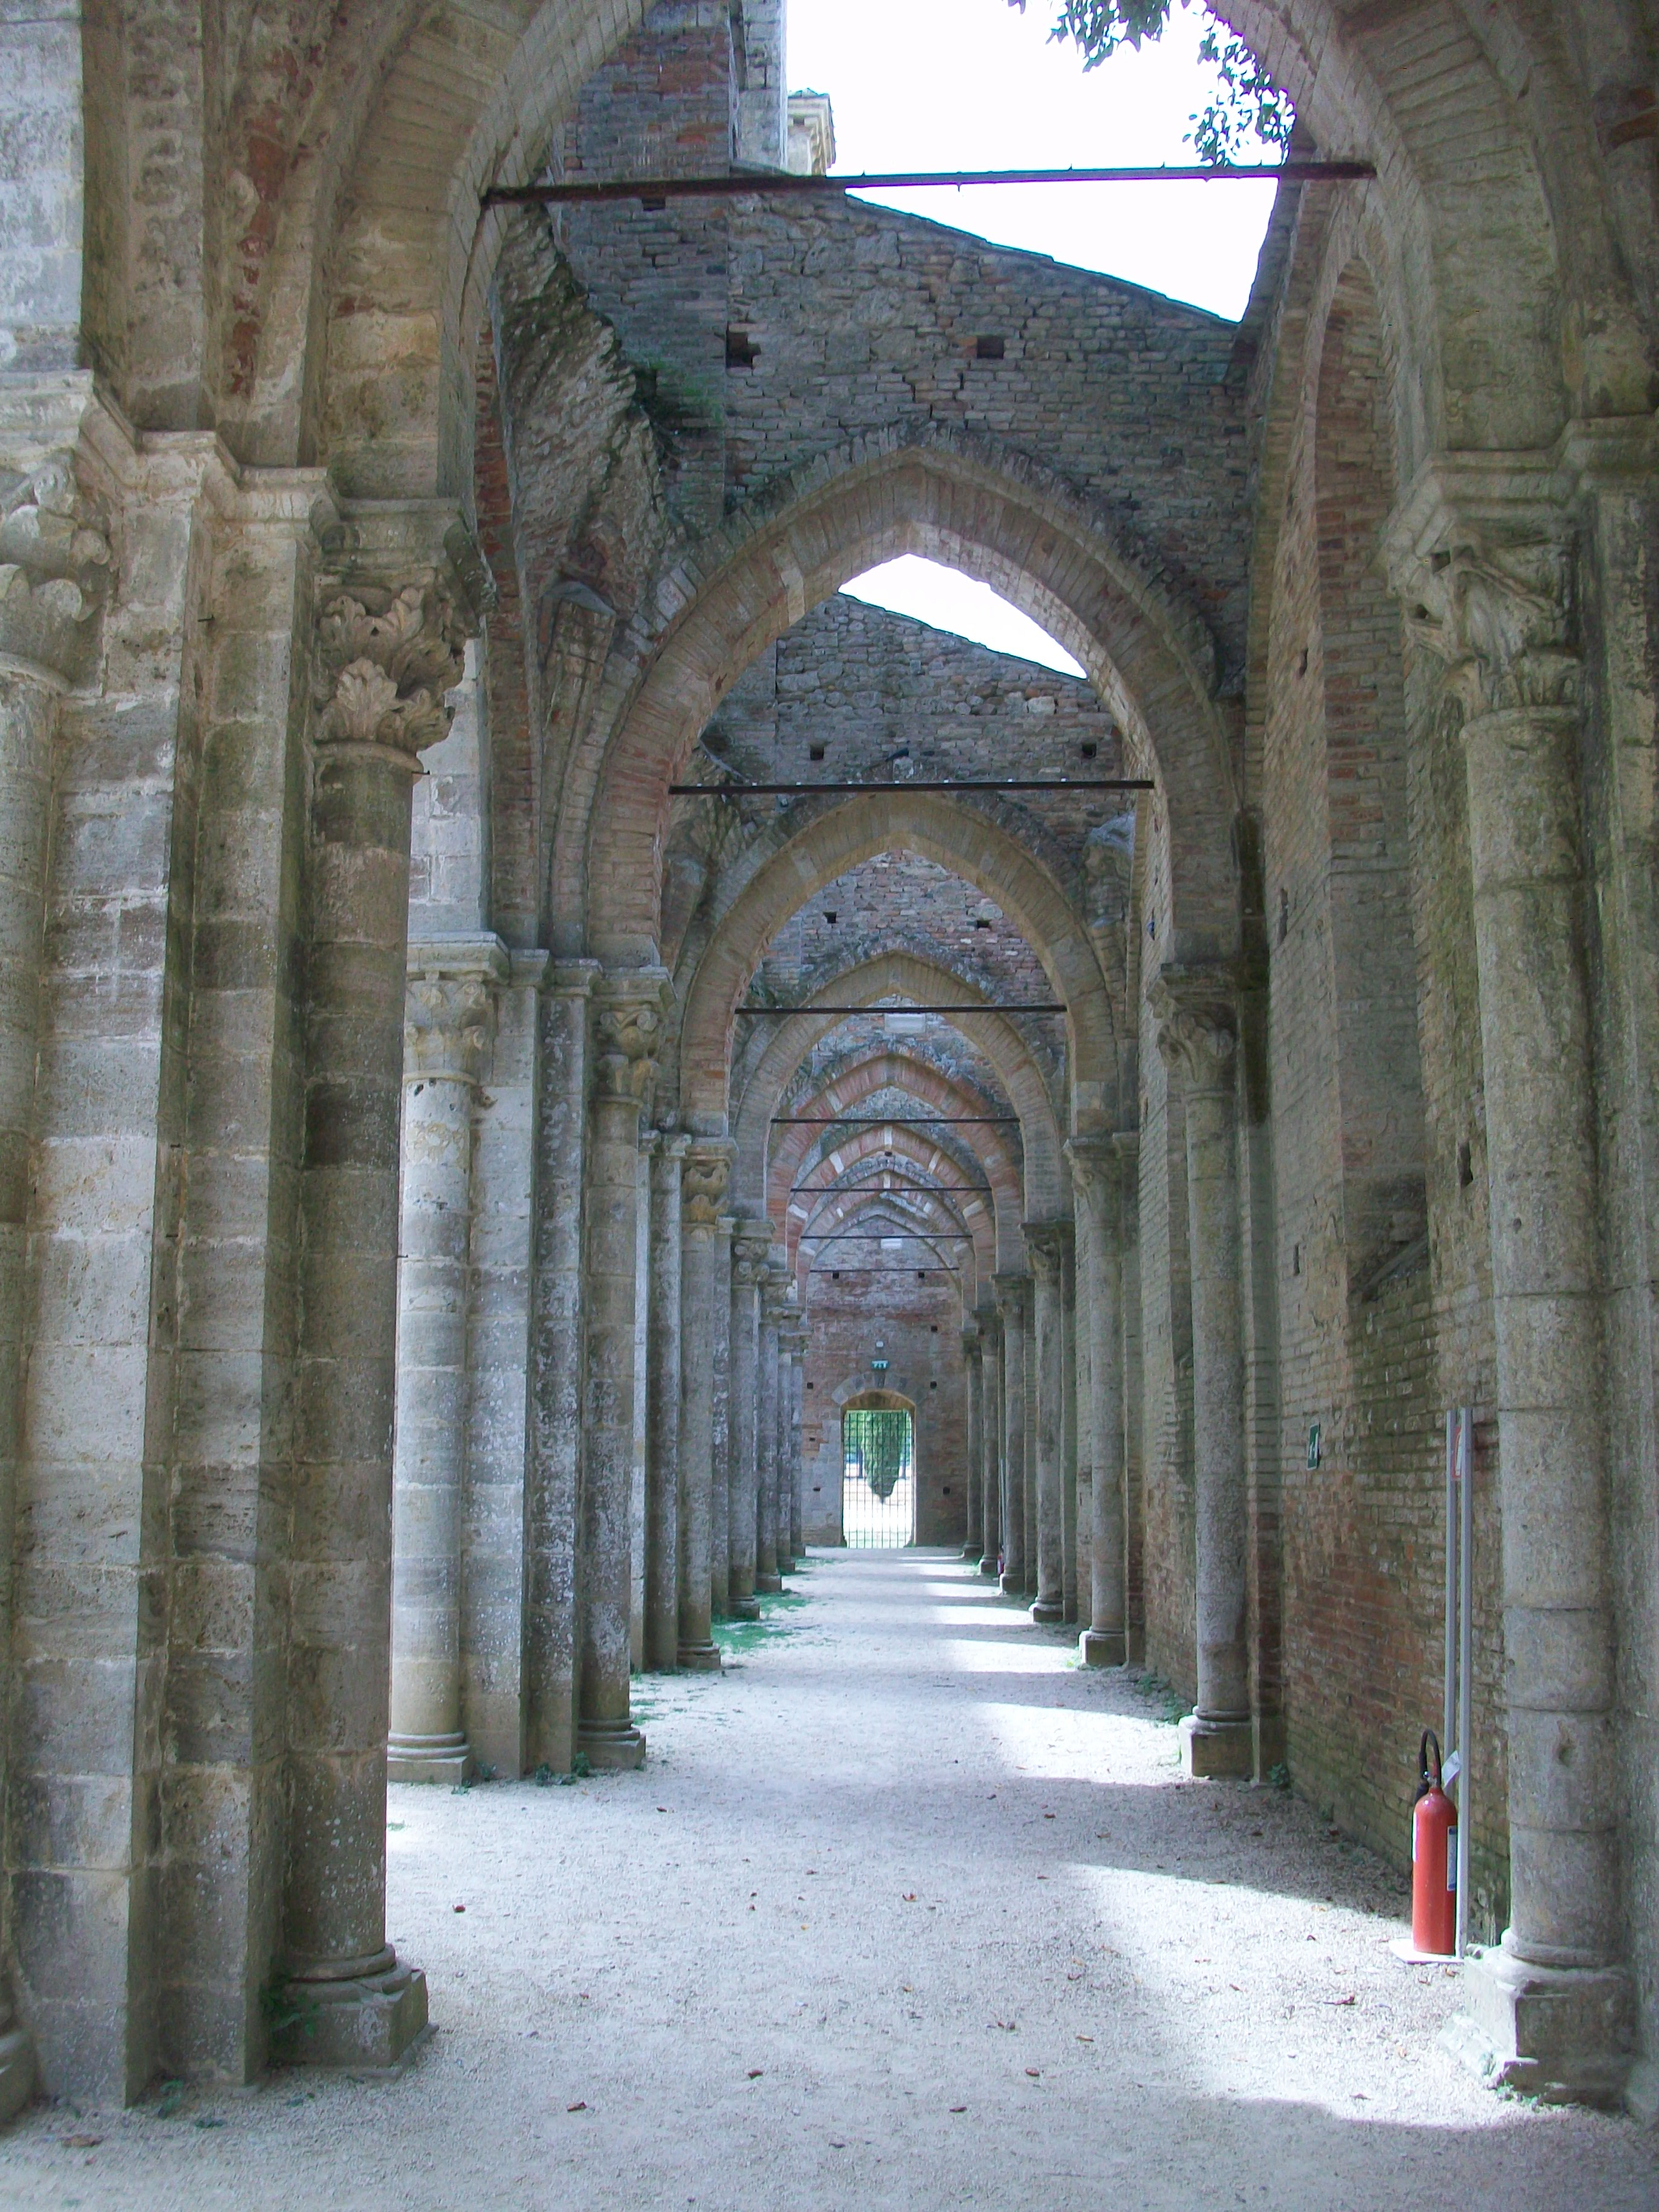 This picture demonstrates the archways in the cathedral